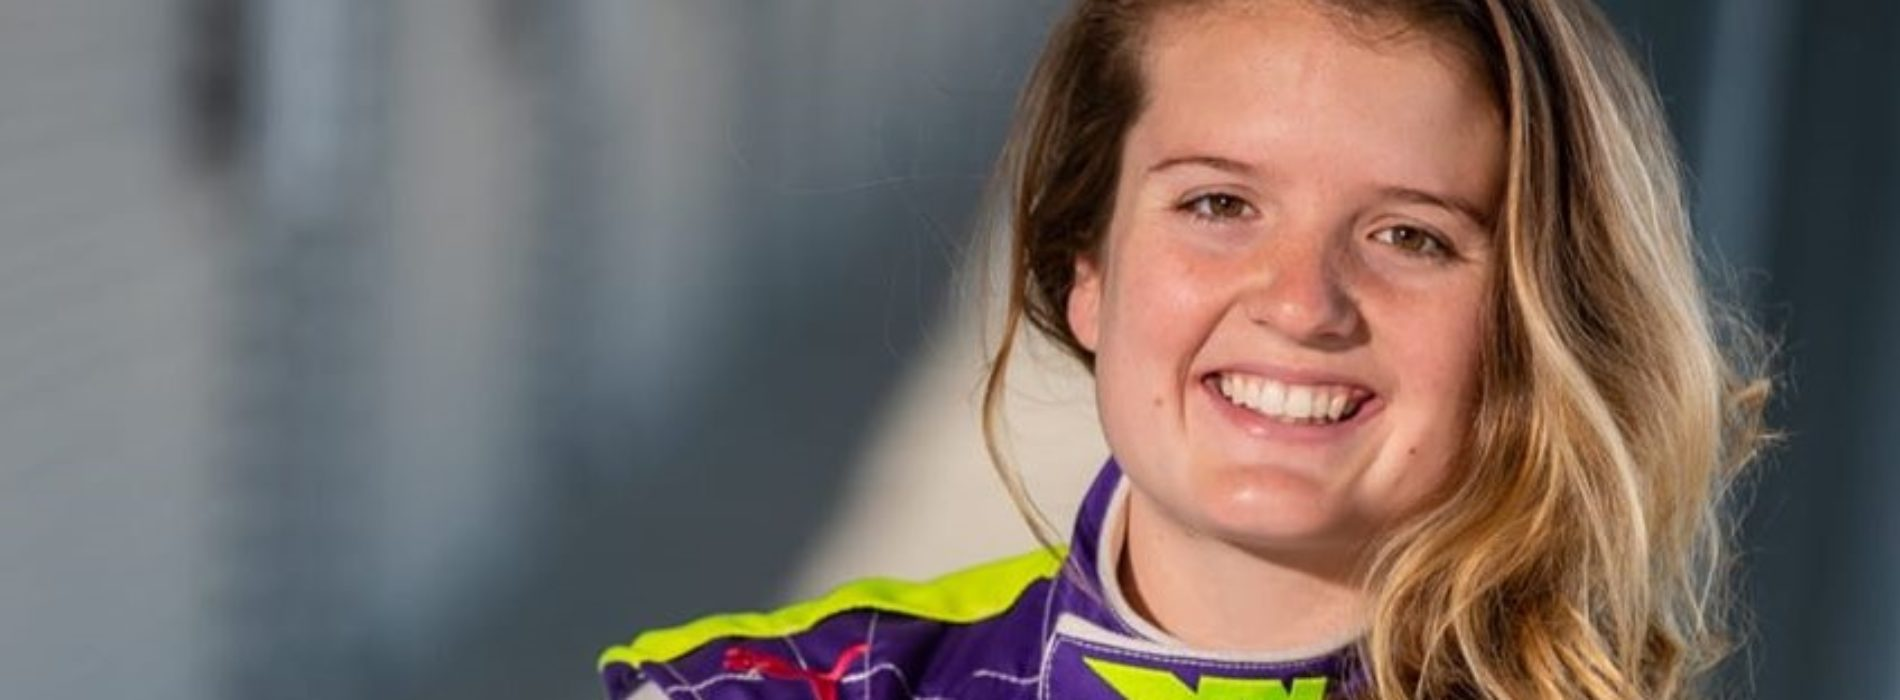 MXLink Live speaks with Caitlin Wood racing WSeries- ESports League, marketing and challenges during her Motorsport career